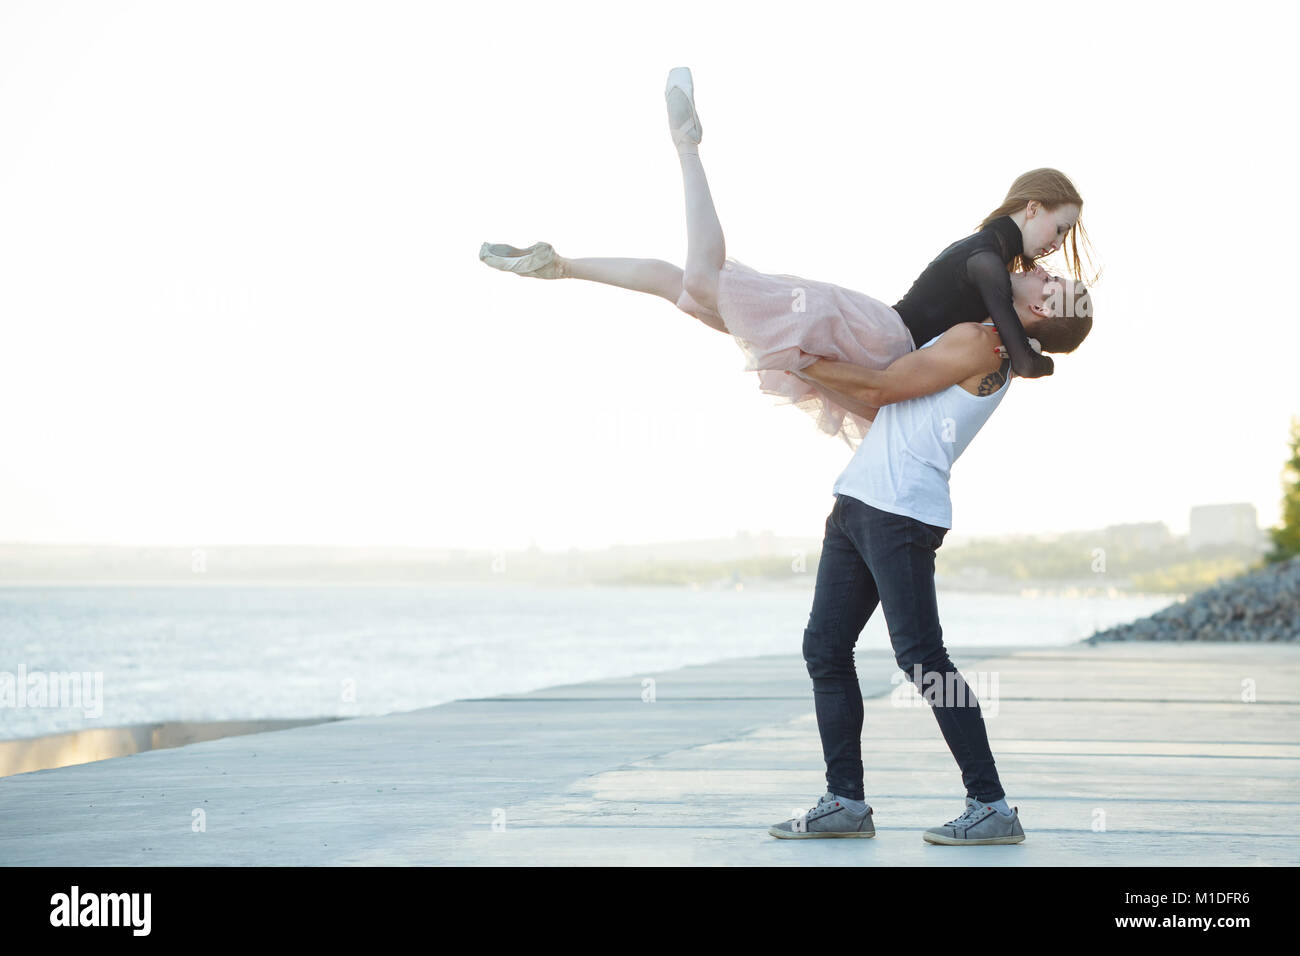 Slender ballerina dances with a modern dancer. Dating lovers. Passion and romance of dance. Performance on the streets. - Stock Image